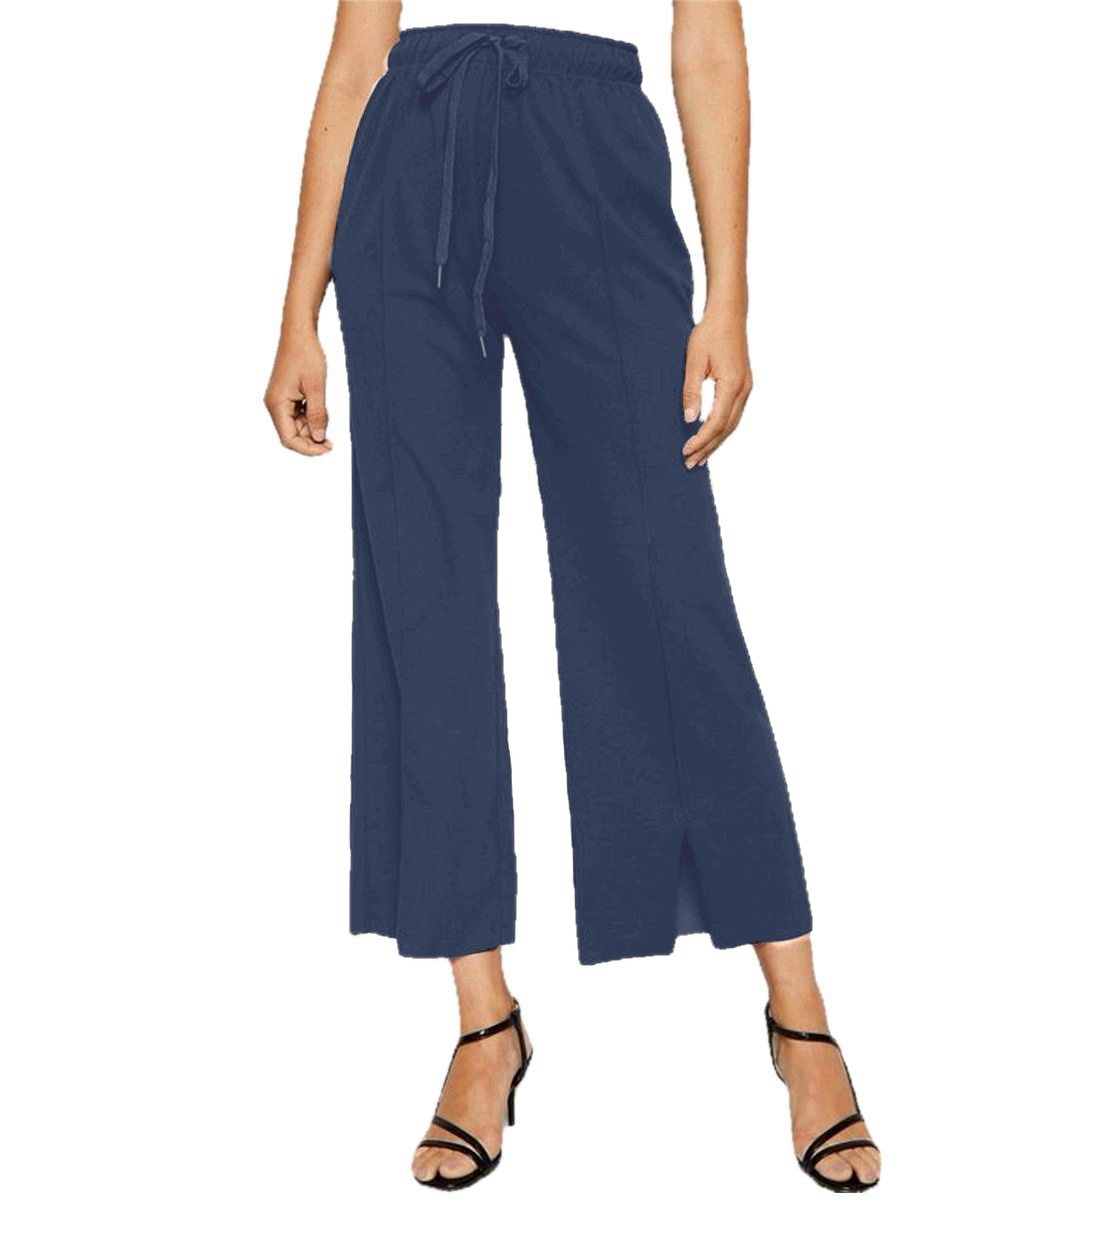 Relaxed Fit Culottes Trousers in Charcoal Grey